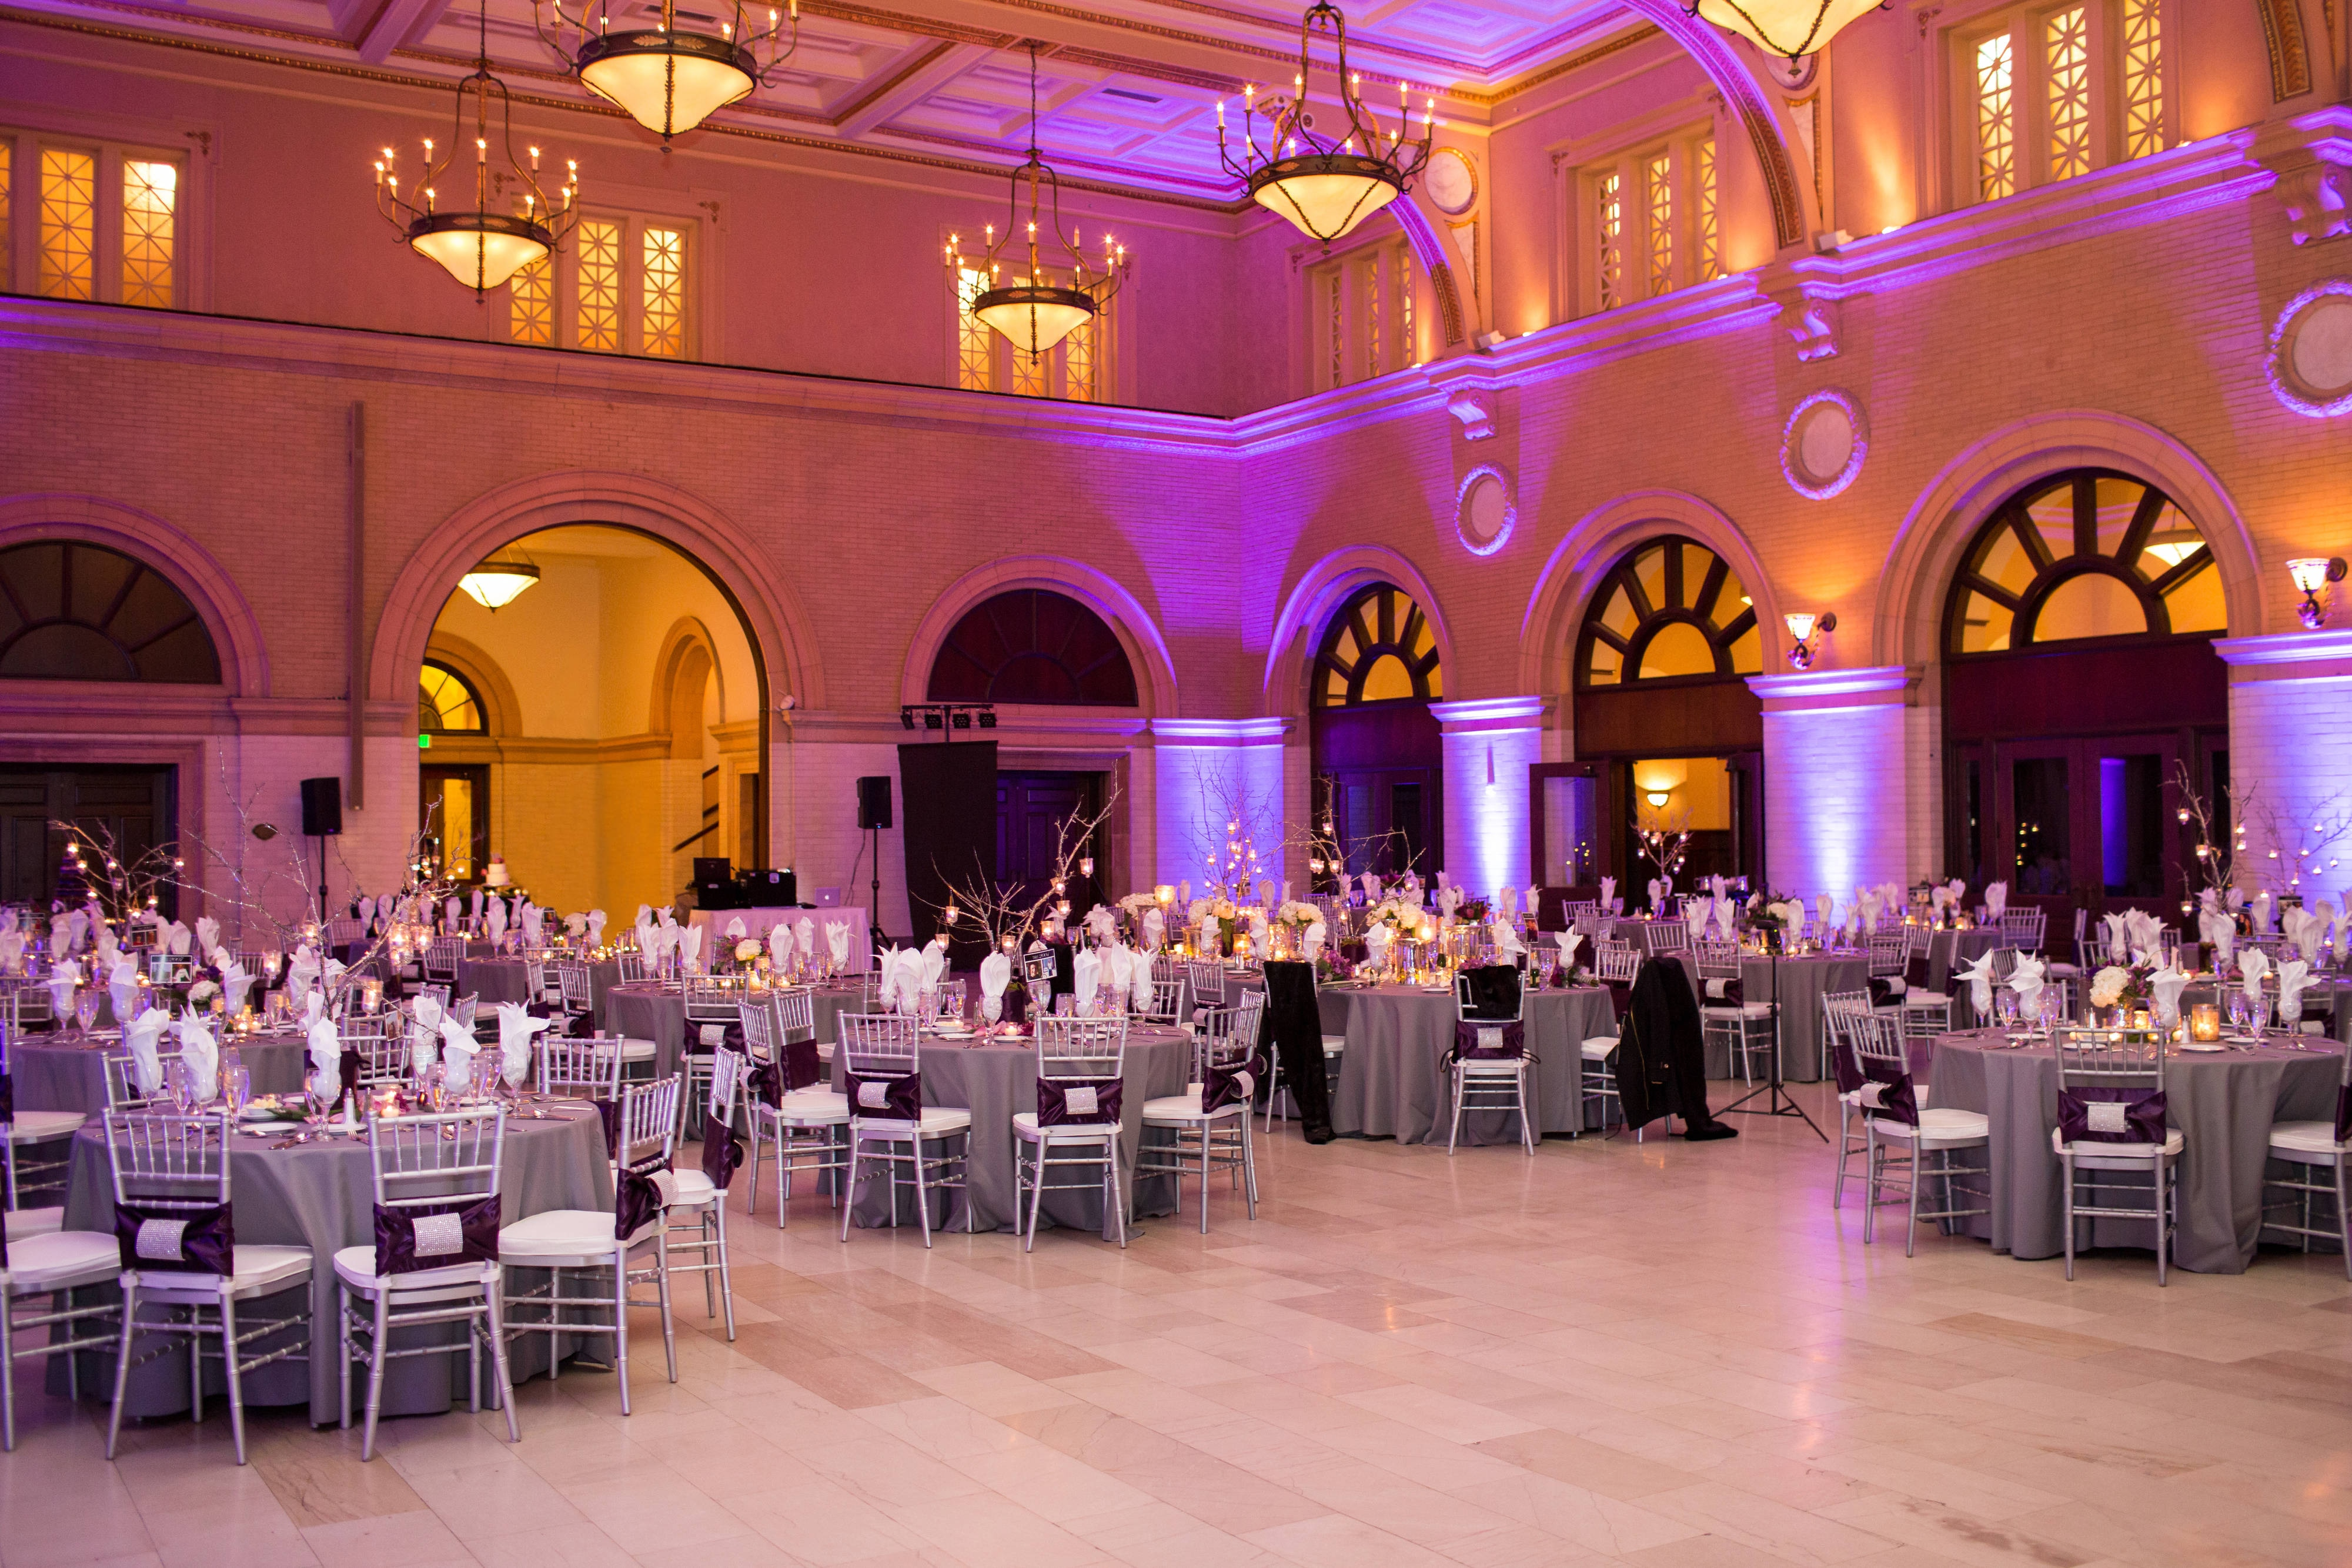 Minneapolis hotel wedding reception